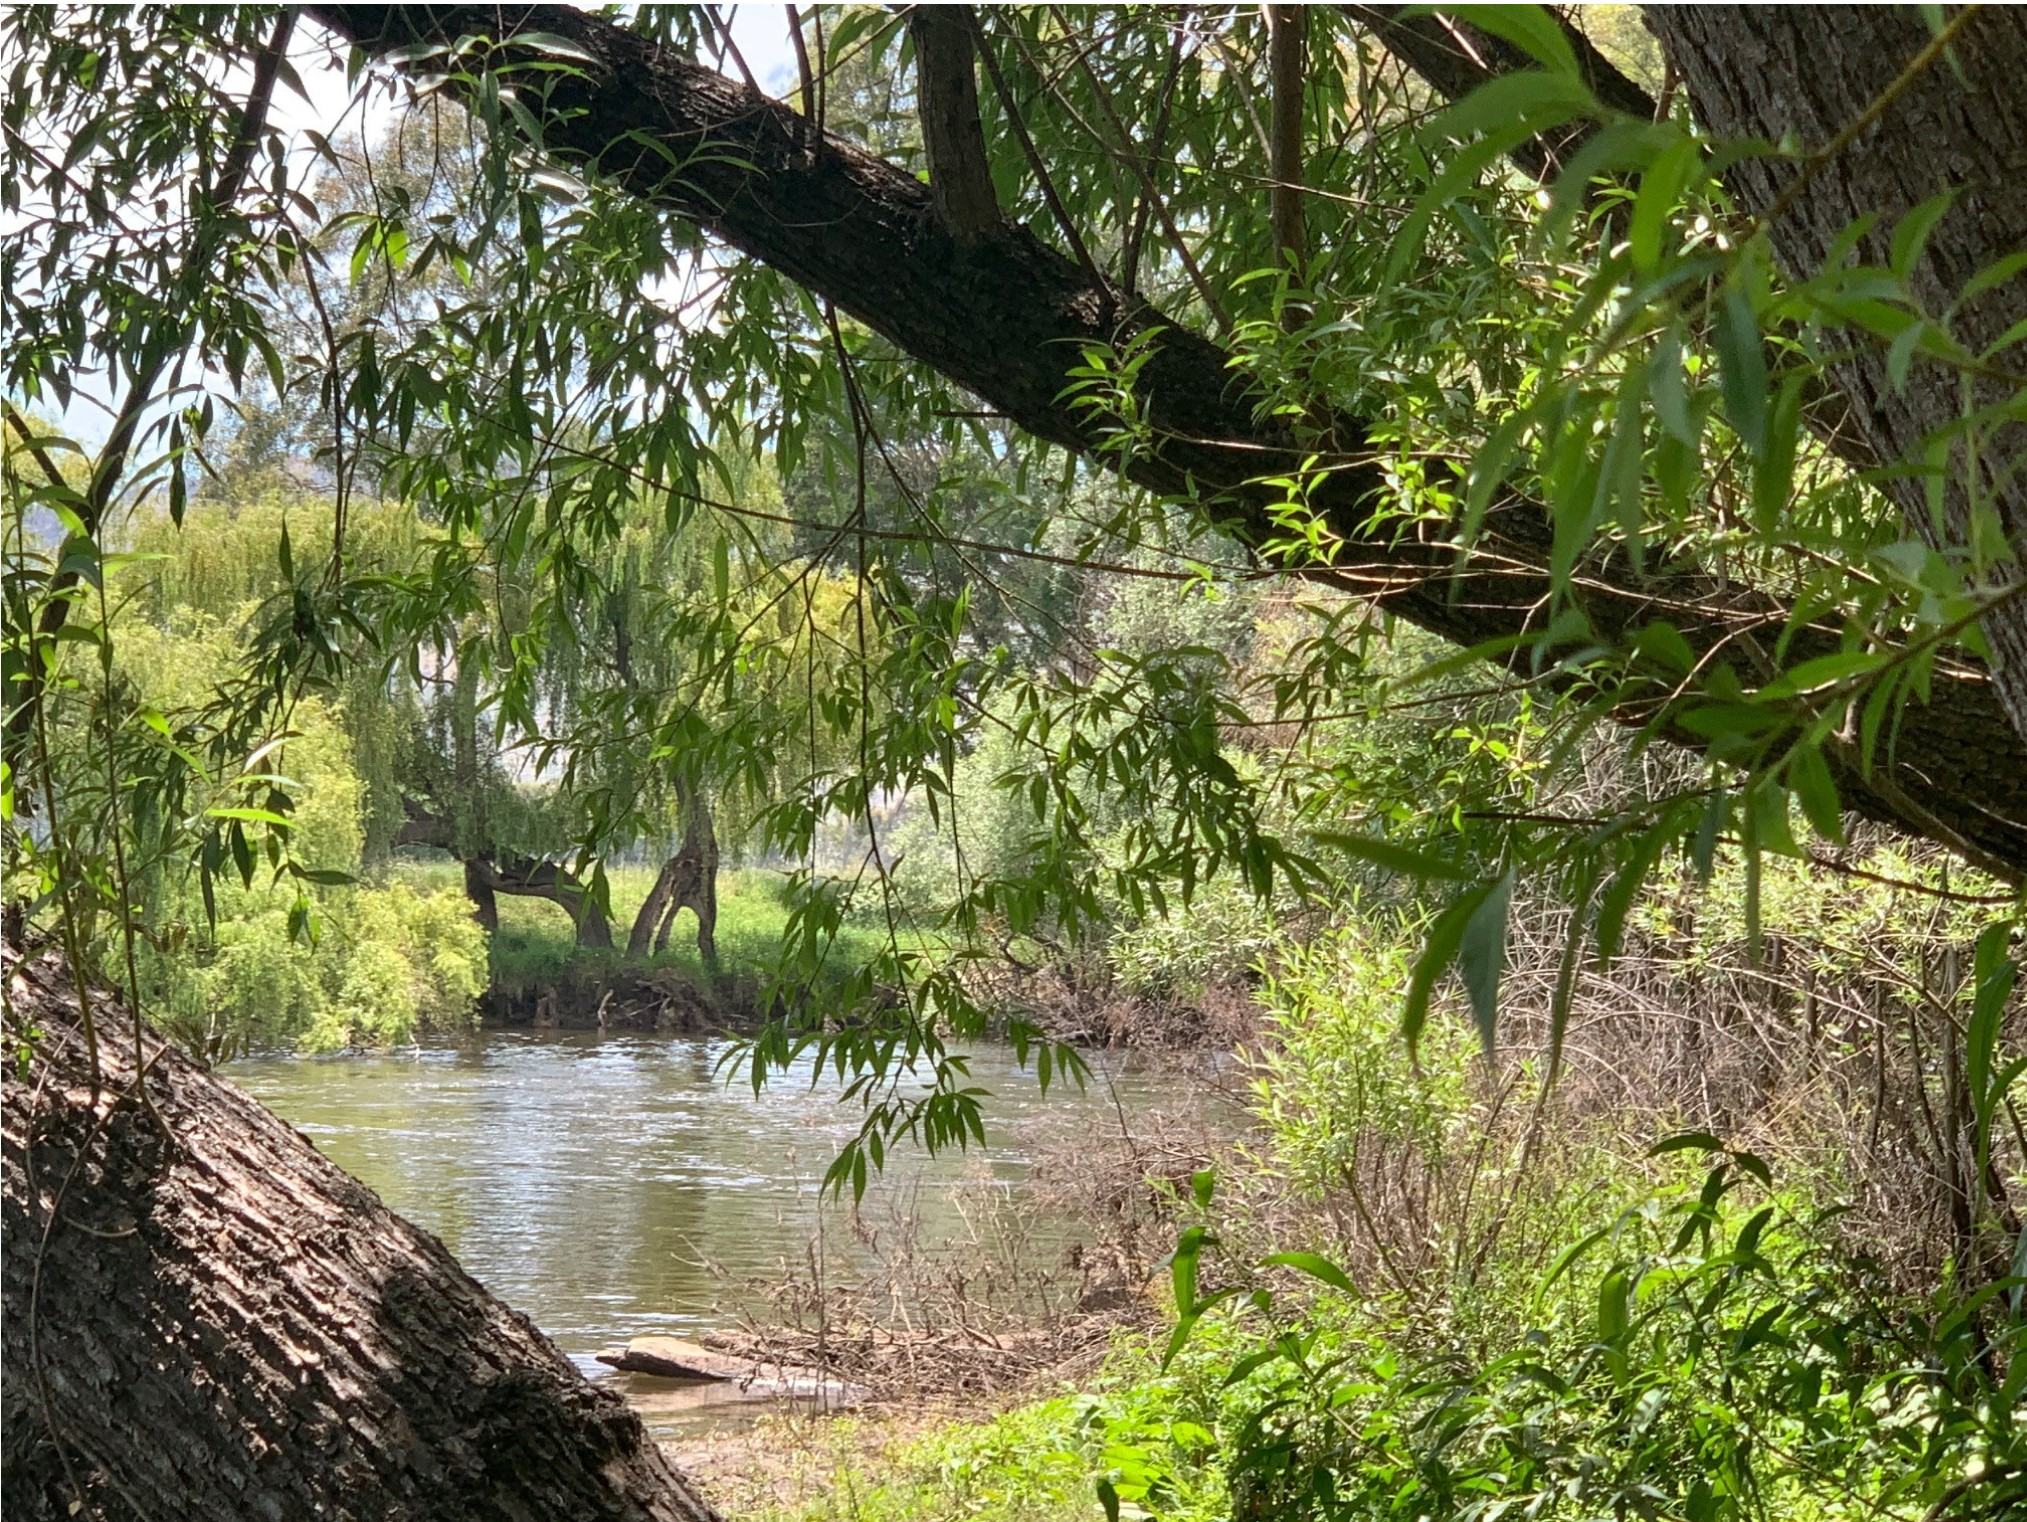 Towong Murray River is seen through a clearing in the trees